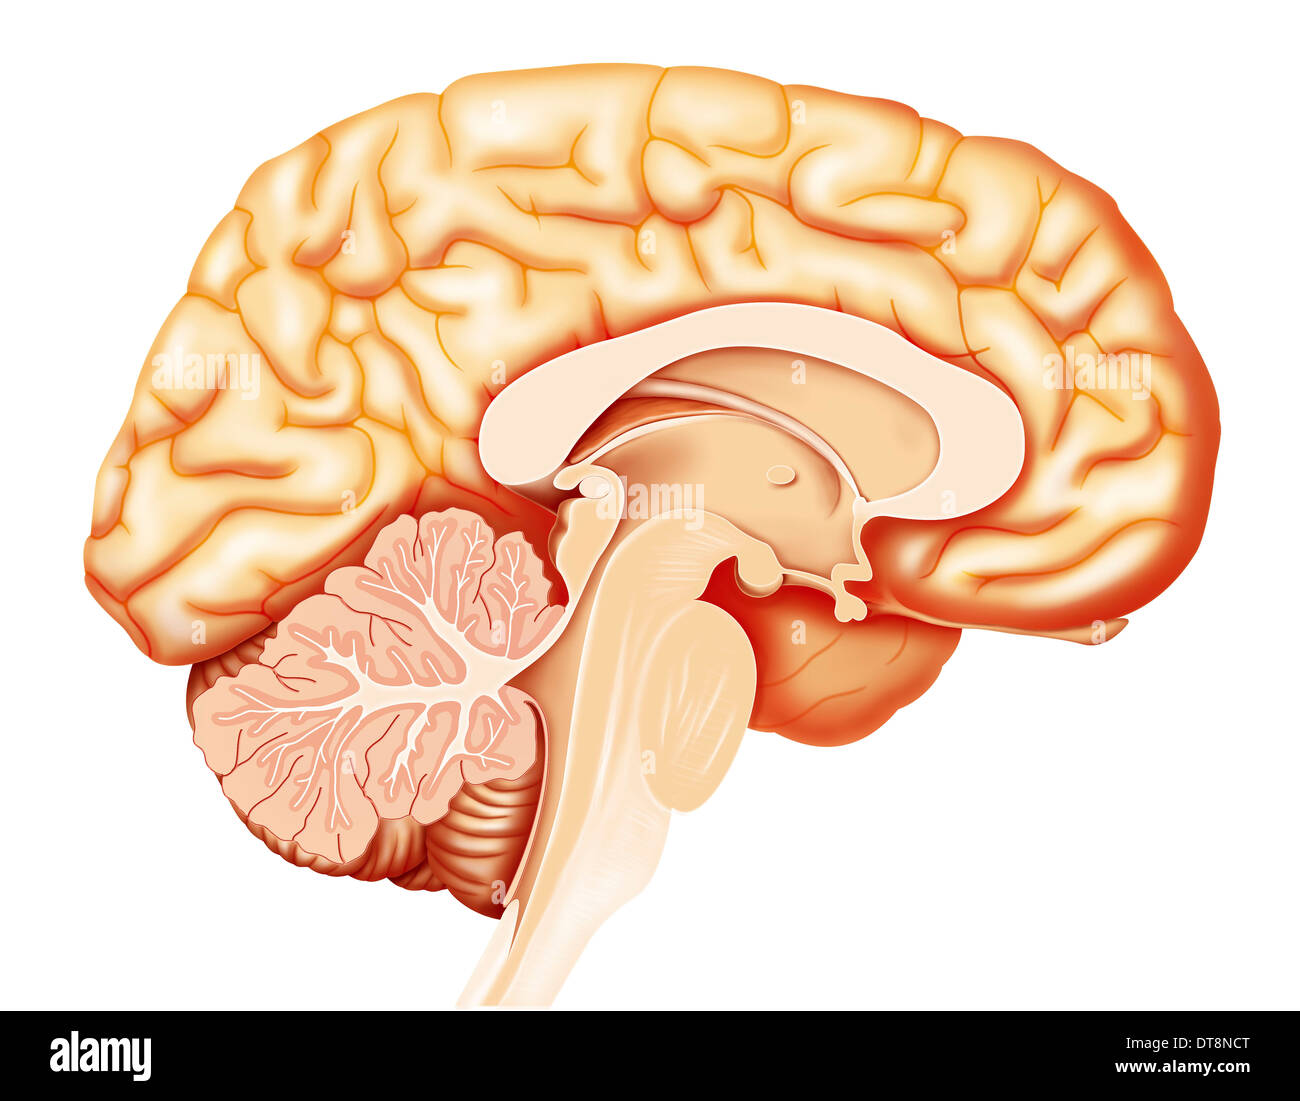 BRAIN DRAWING - Stock Image